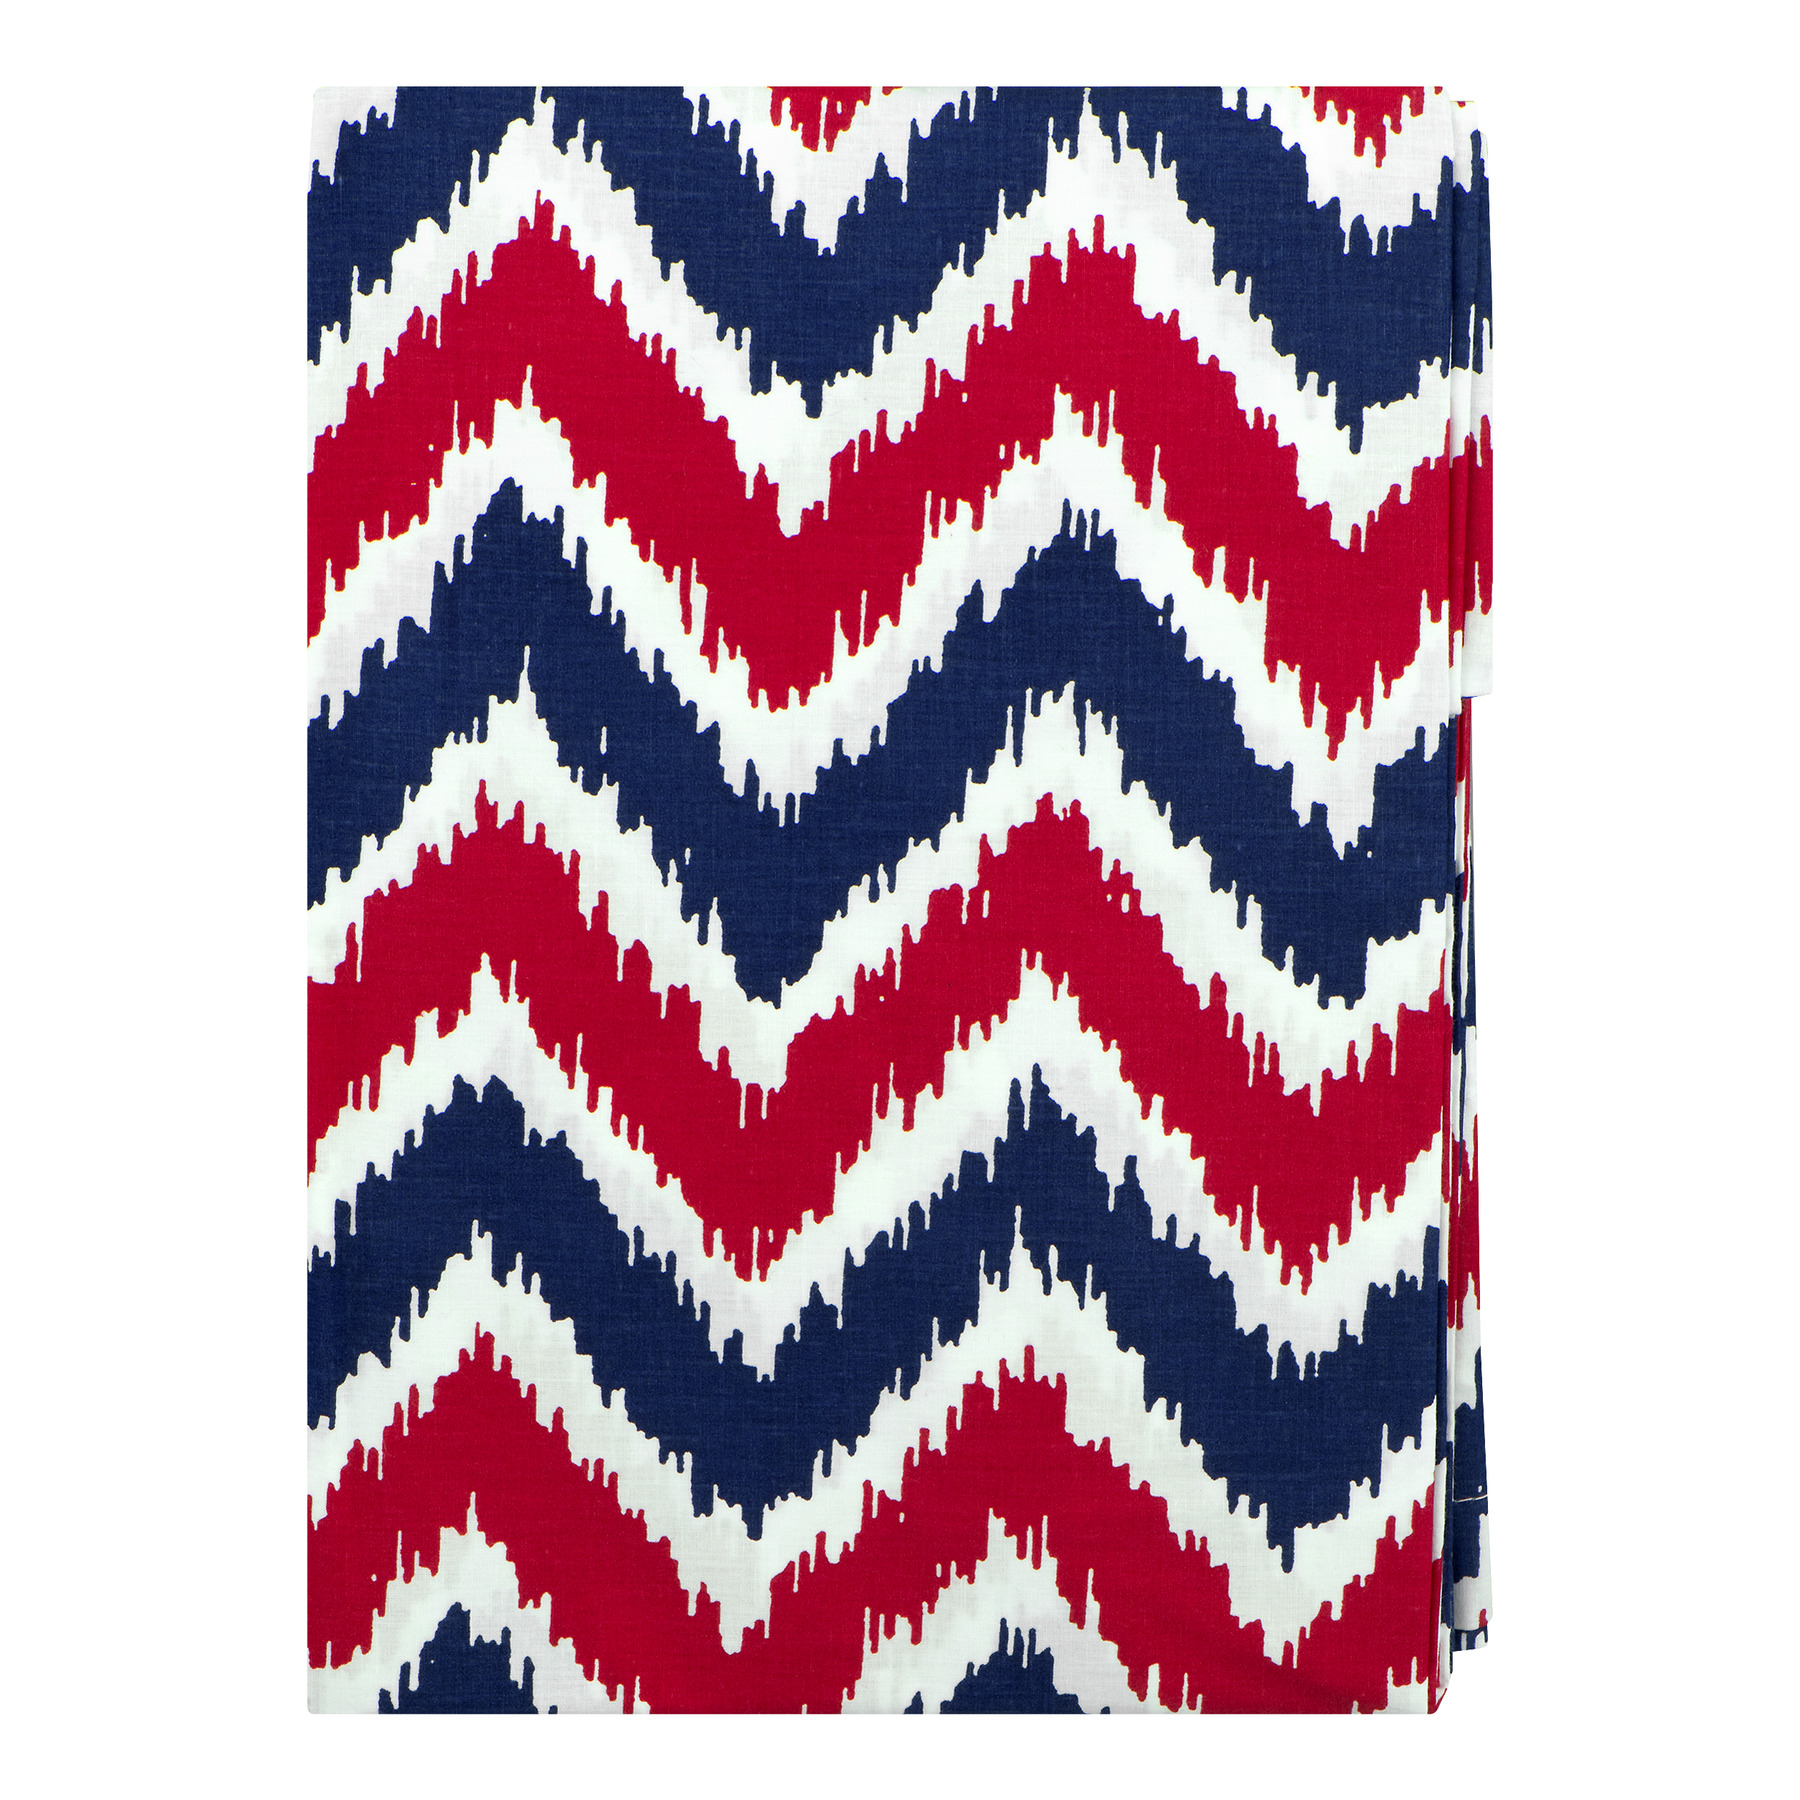 Bacati Curtain Panel Blue/Red Zigzag Mix N Match, 1.0 CT